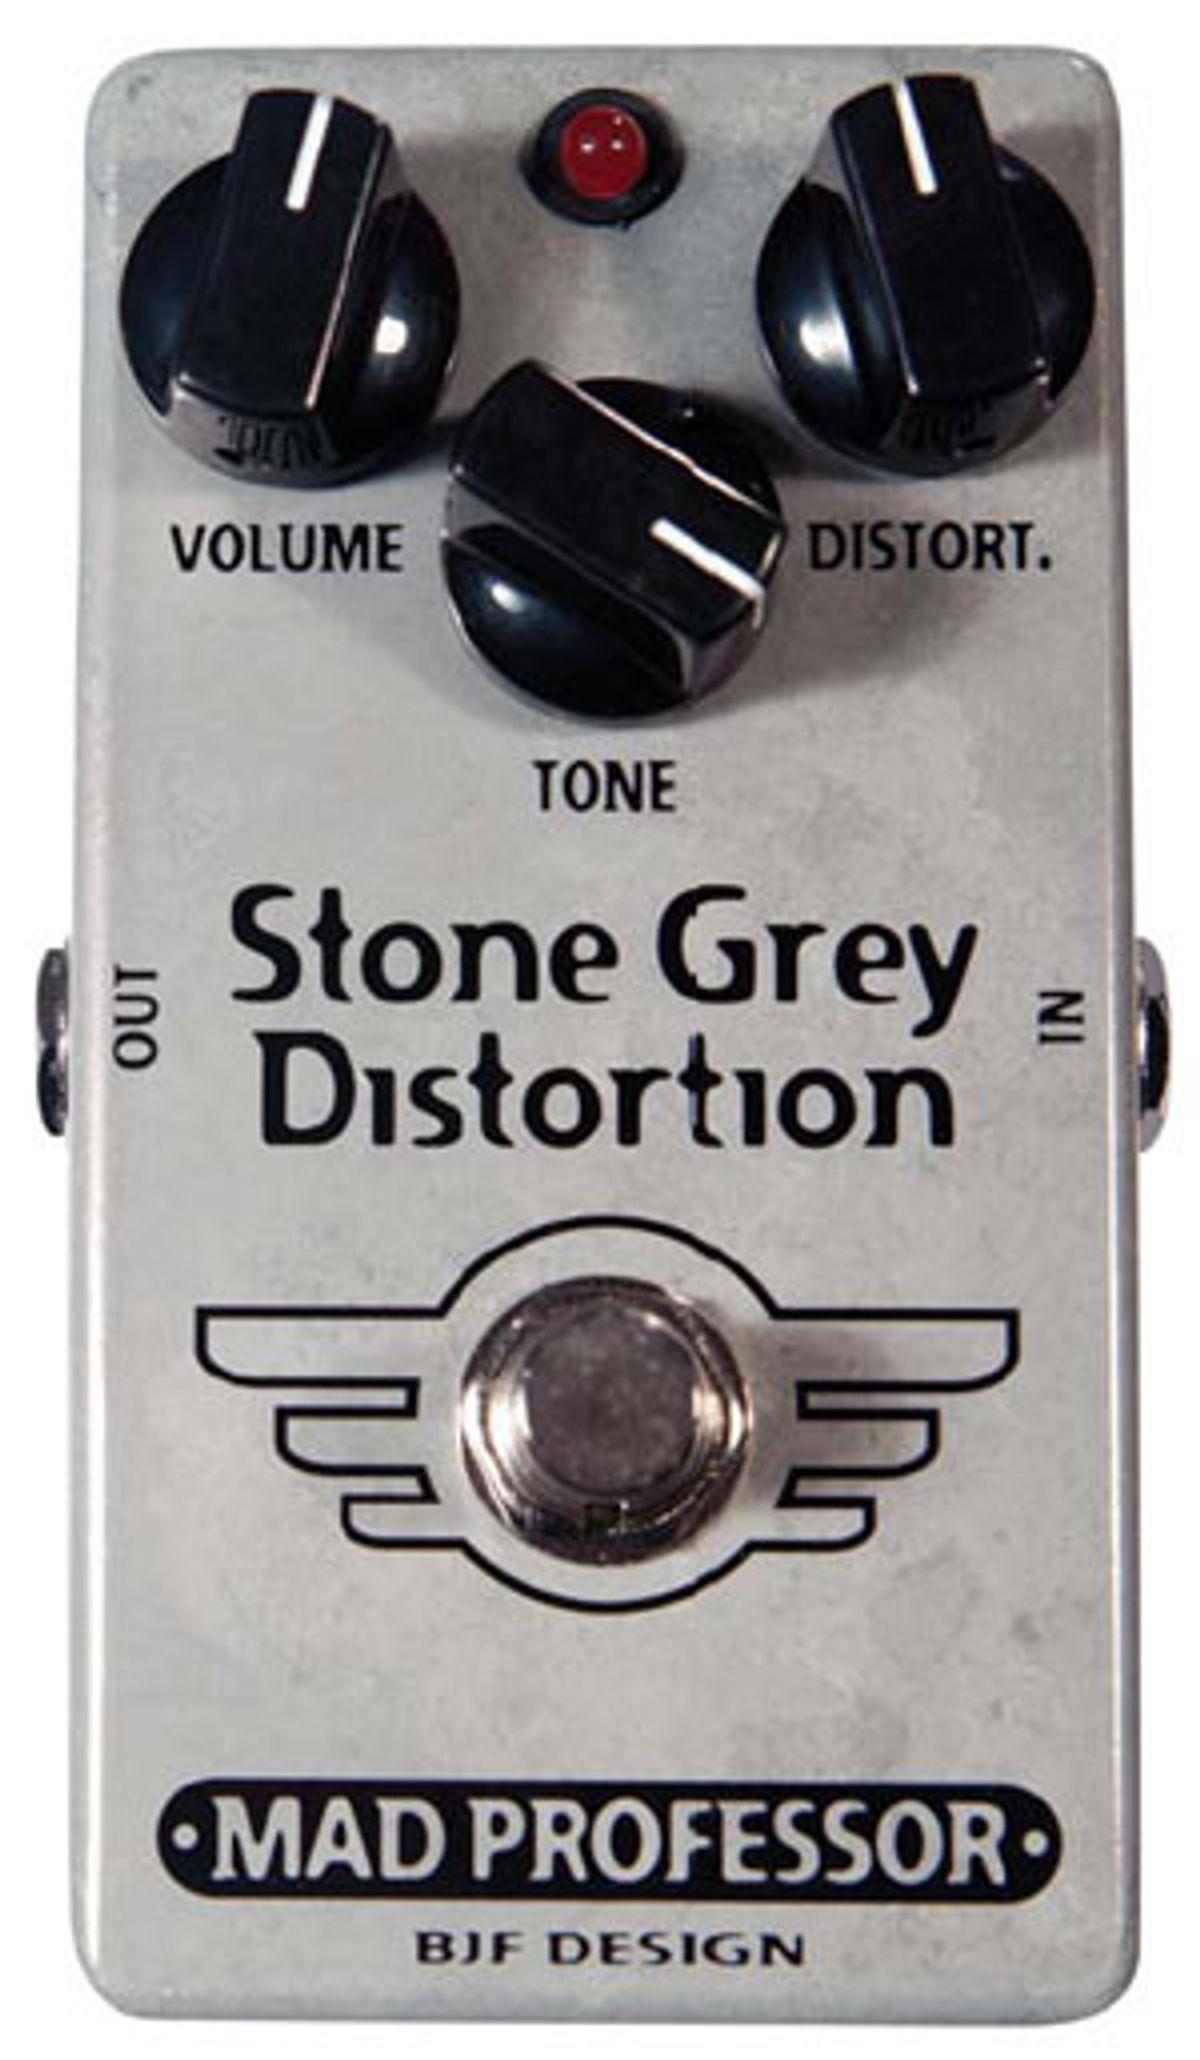 Mad Professor Stone Grey Distortion Pedal Review